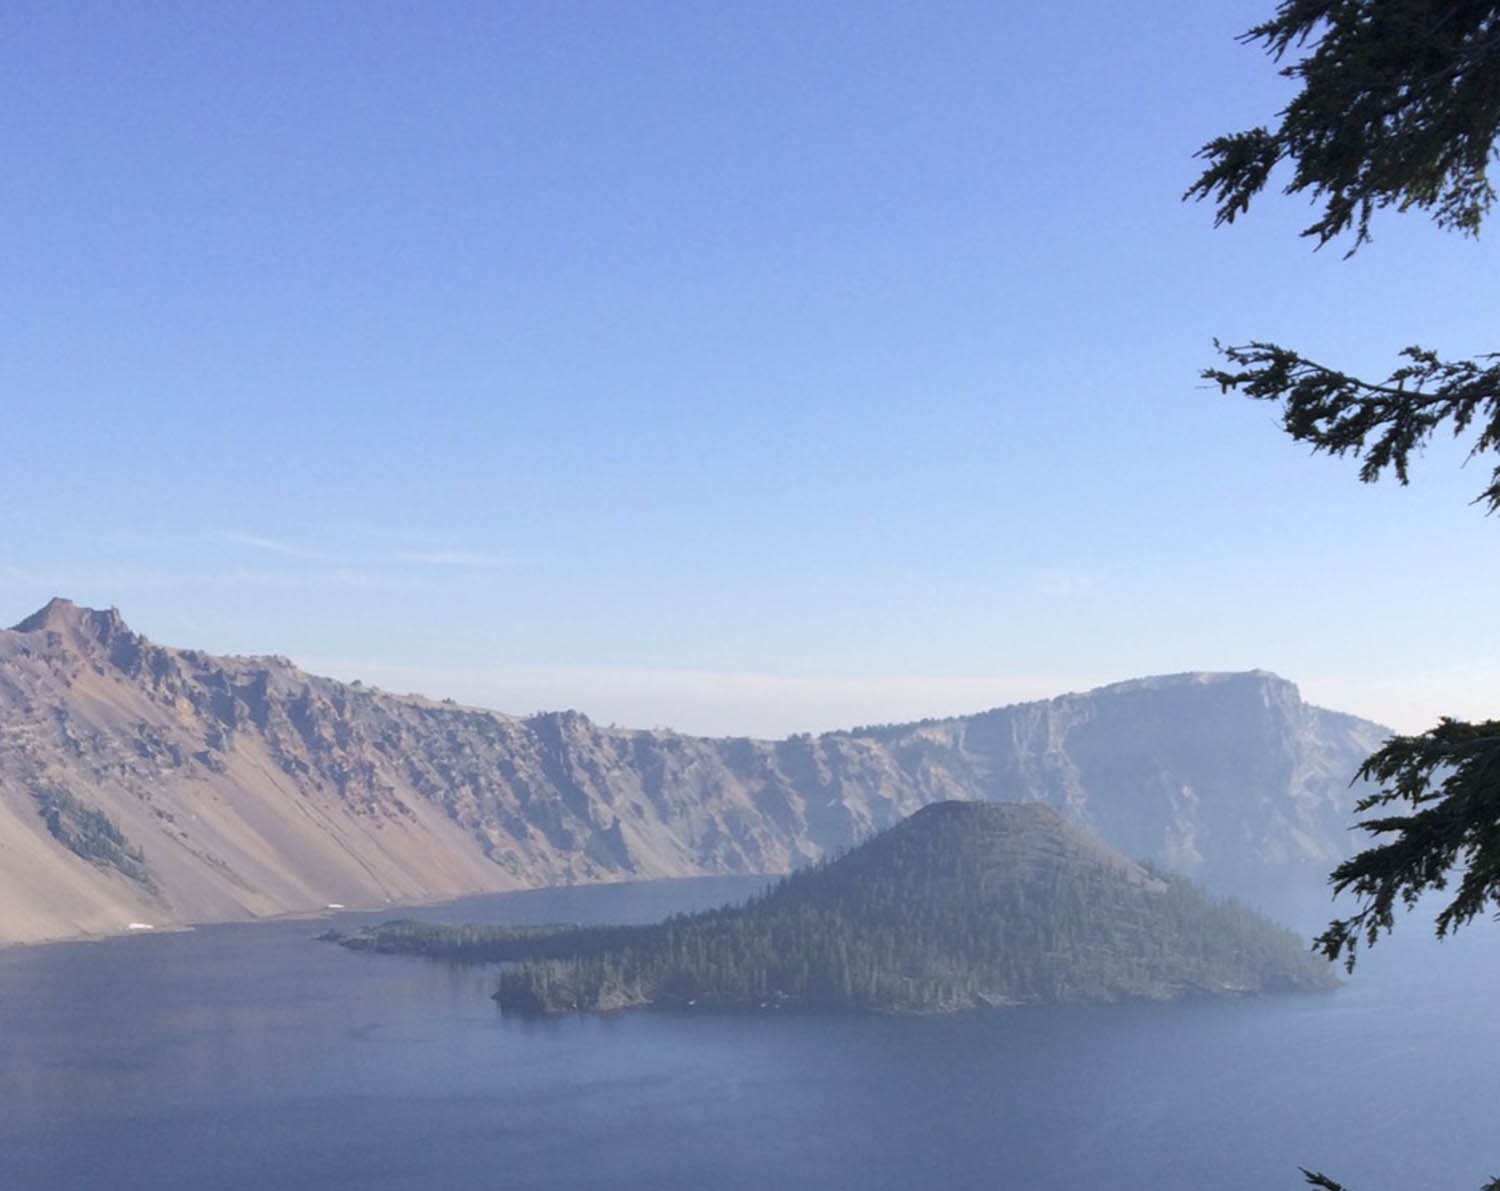 Crater Lake Century bike ride in Southern Oregon starting out of Fort Klamath